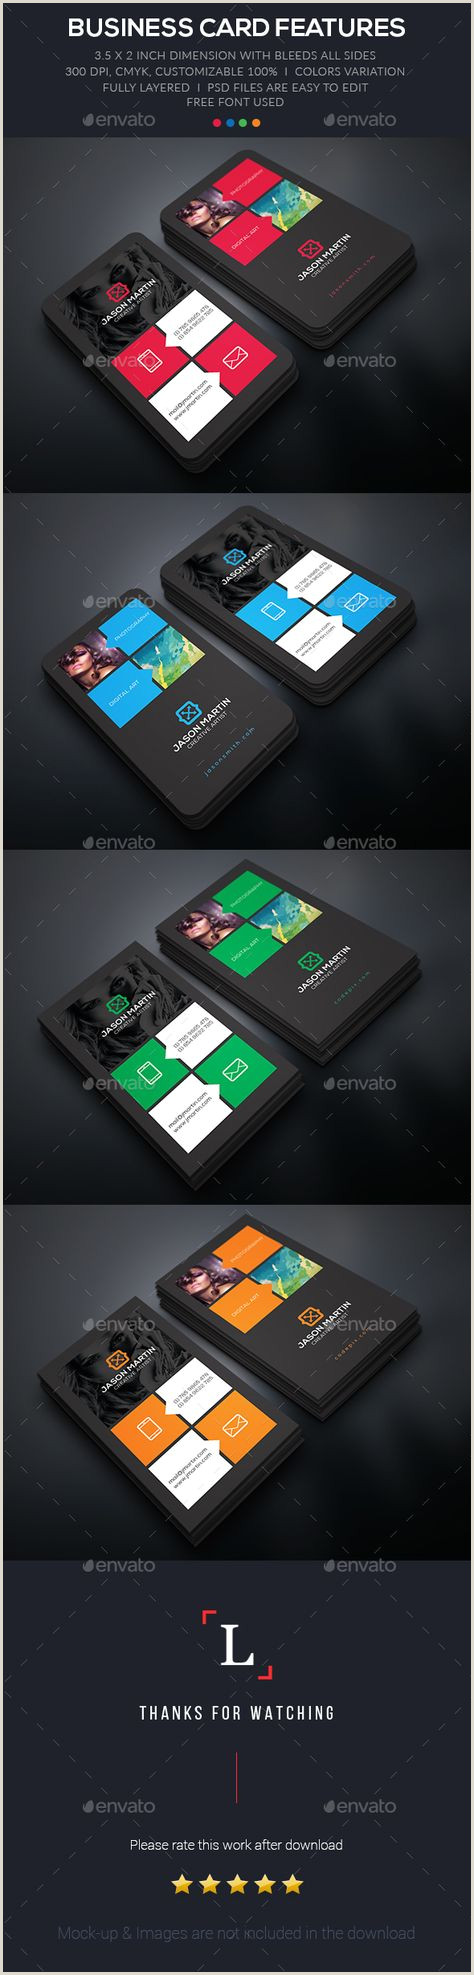 Business Cards Images Free Download 22 New Ideas Photography Business Cards Ideas Products